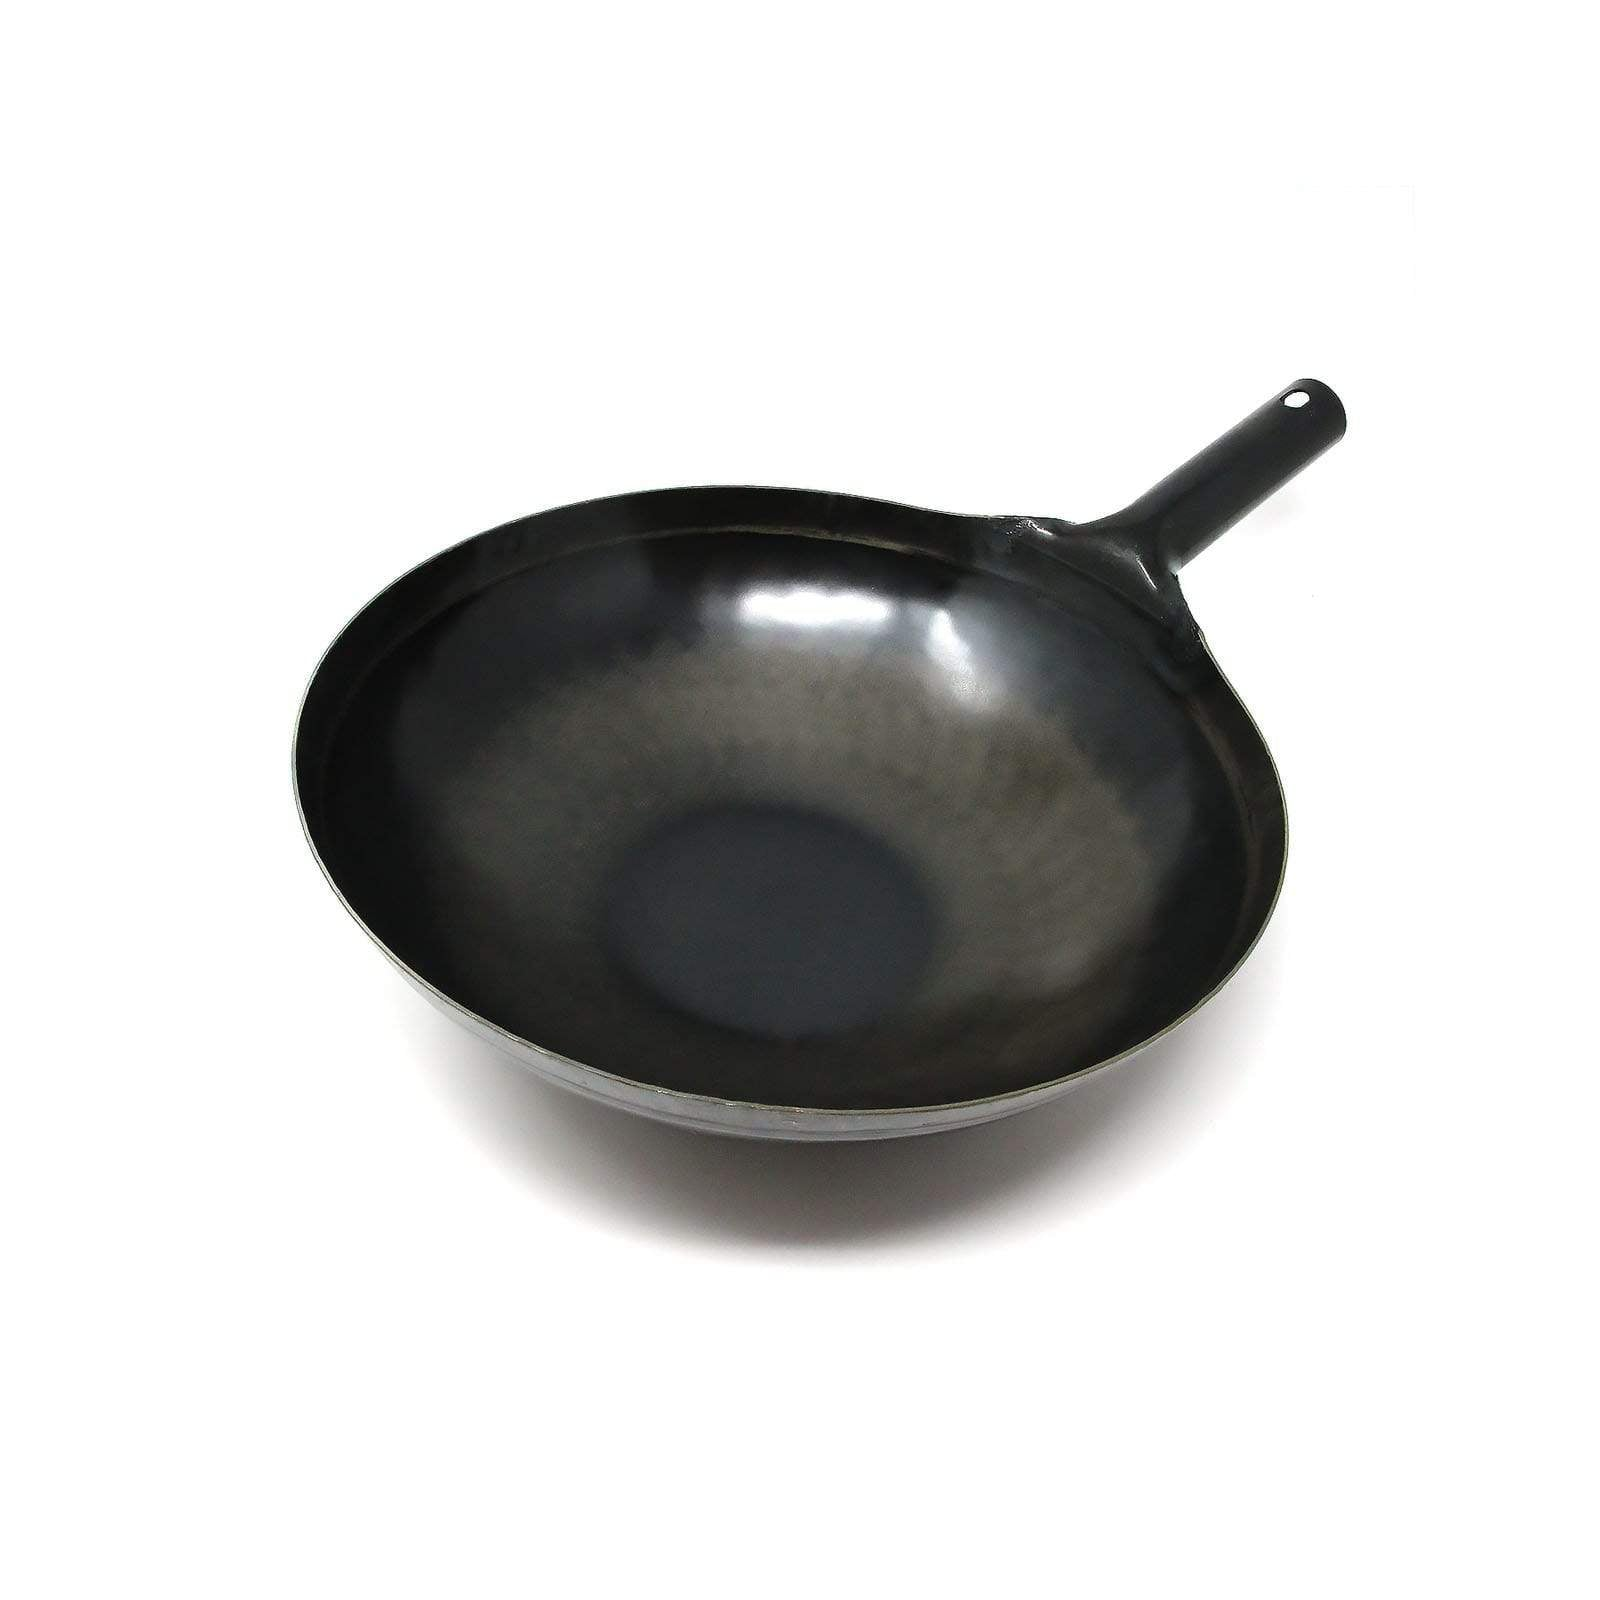 Folding Skillet and Lid Outdoor Skillet PanFREE US SHIPPING